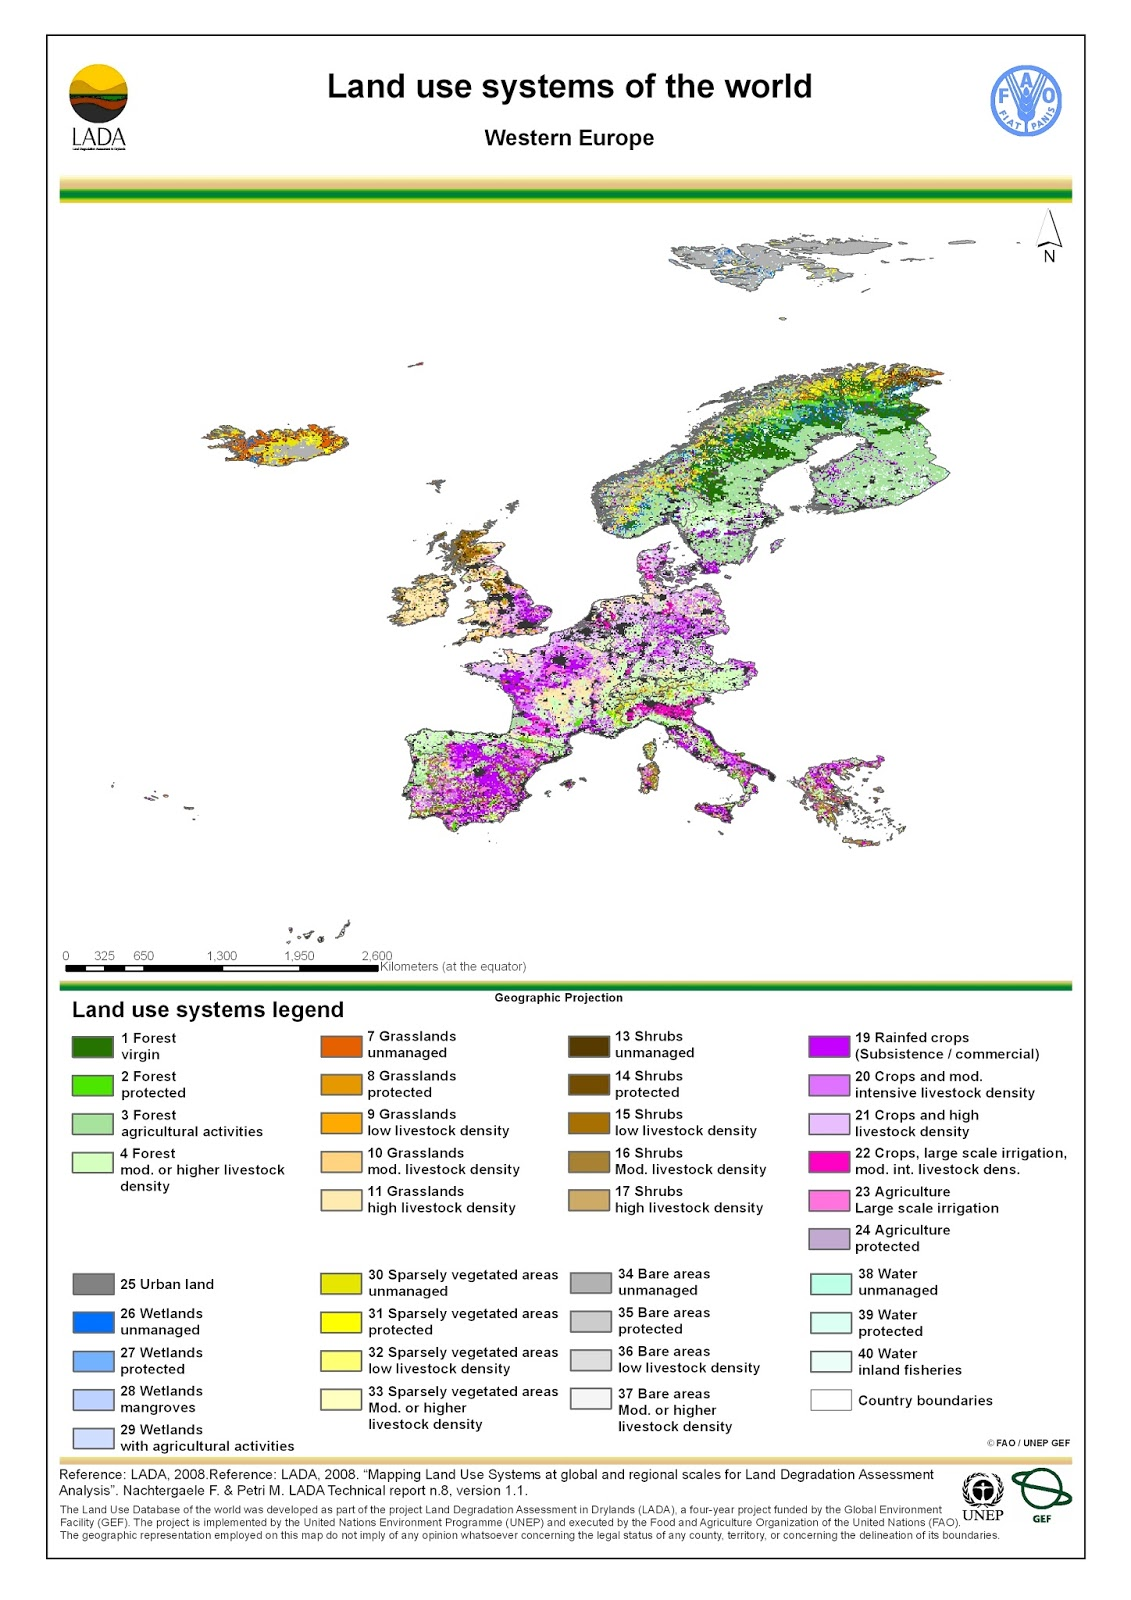 Western Europe: Land use map